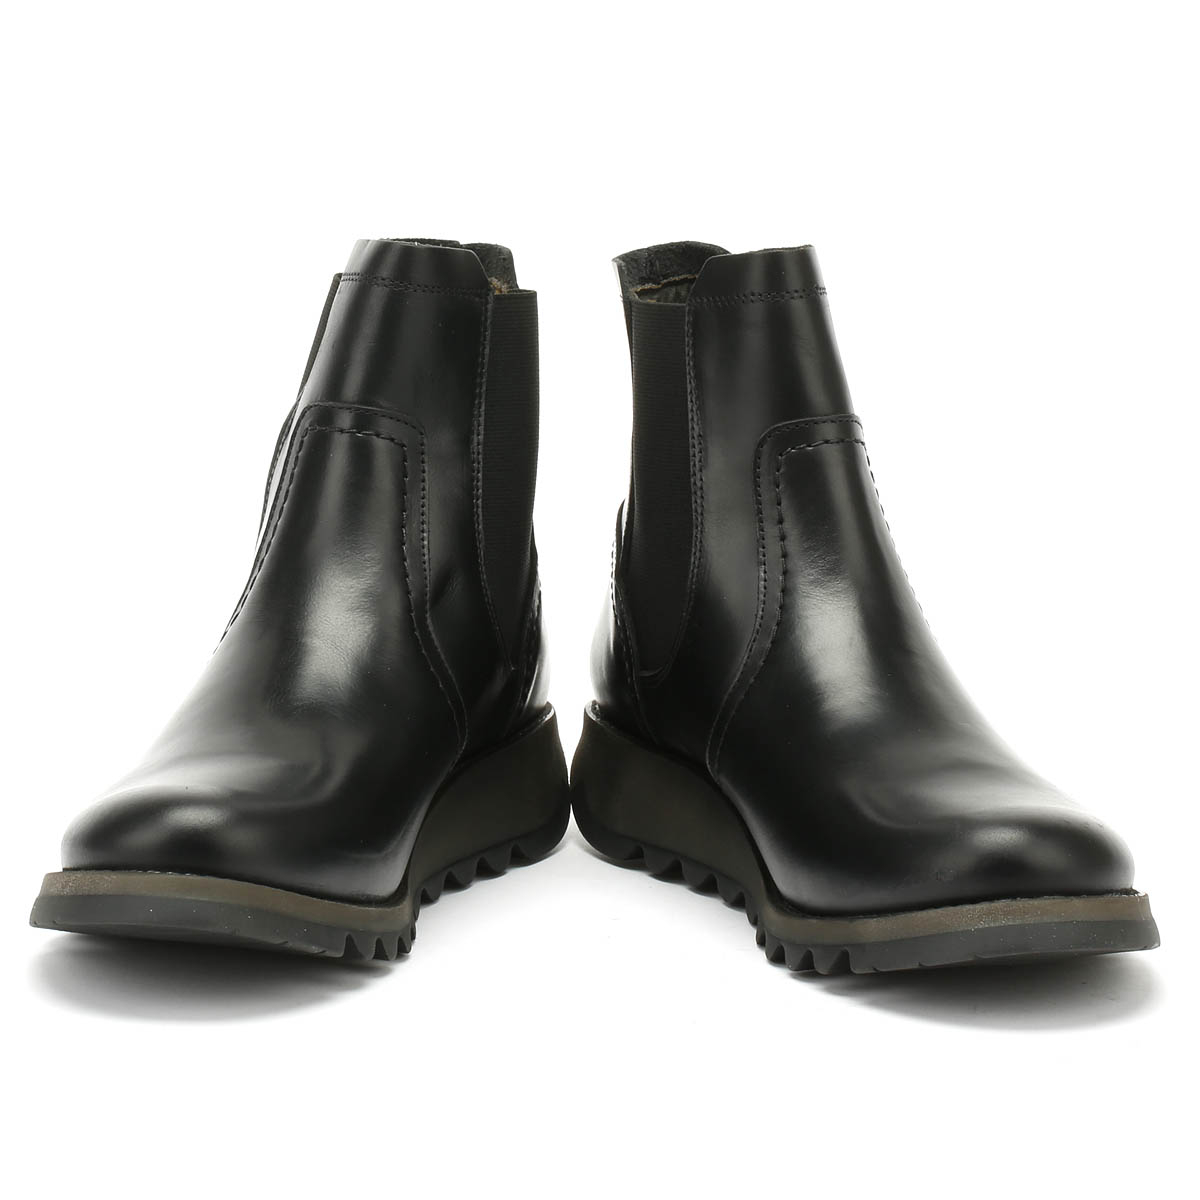 Fly-London-Womens-Boots-Black-Scon-Rug-Ladies-Leather-Winter-Ankle-Shoes thumbnail 21